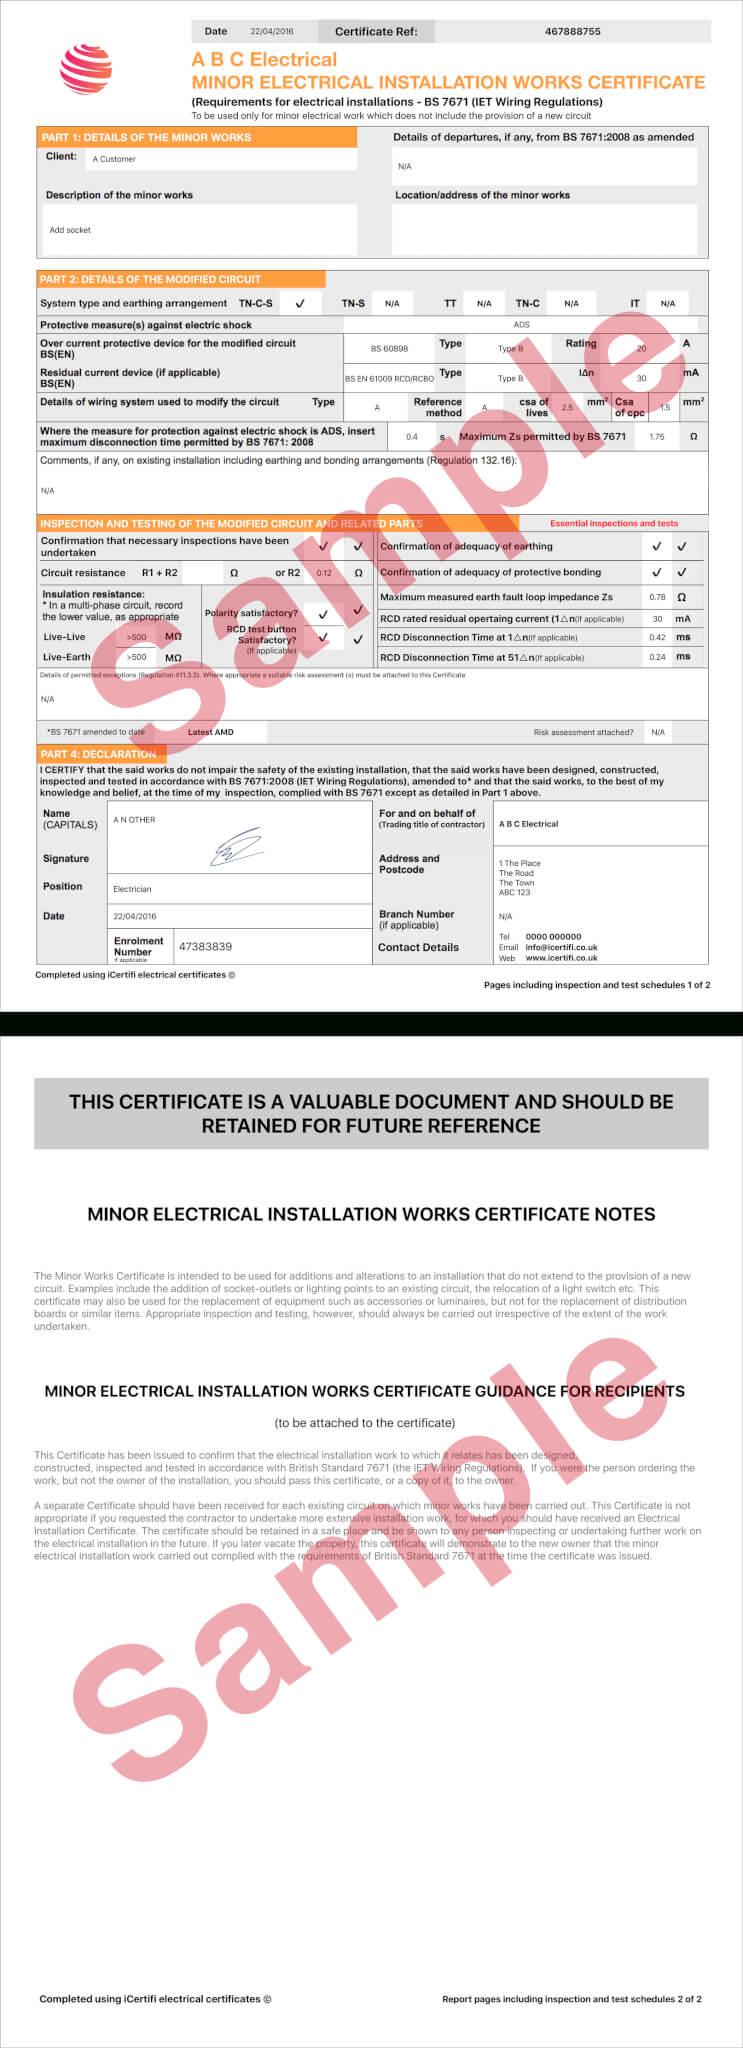 Electrical Certificate - Example Minor Works Certificate In Minor Electrical Installation Works Certificate Template